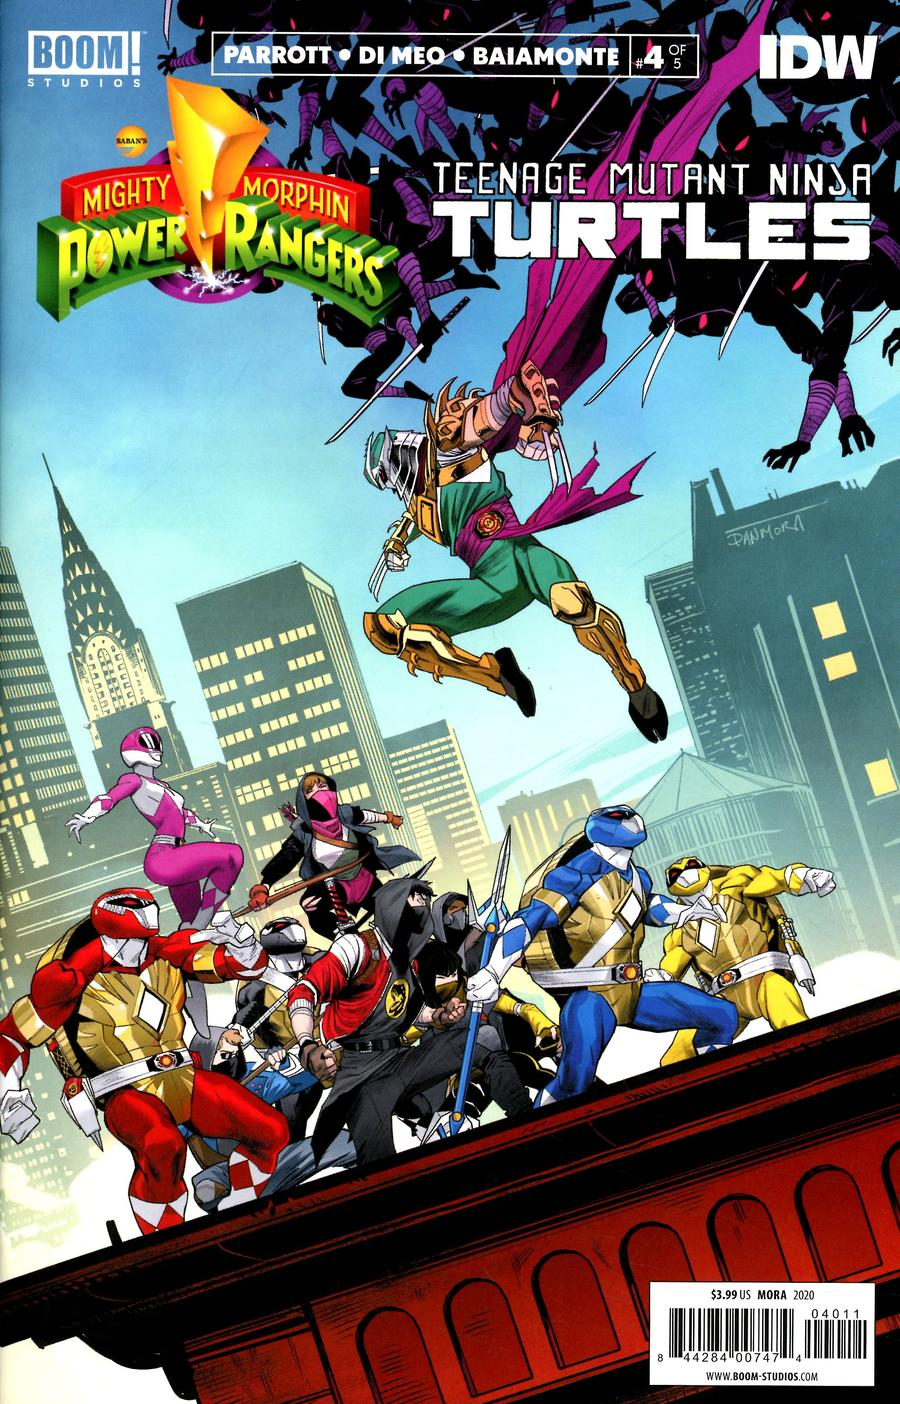 Mighty Morphin Power Rangers Teenage Mutant Ninja Turtles #4 Cover A Regular Dan Mora Cover